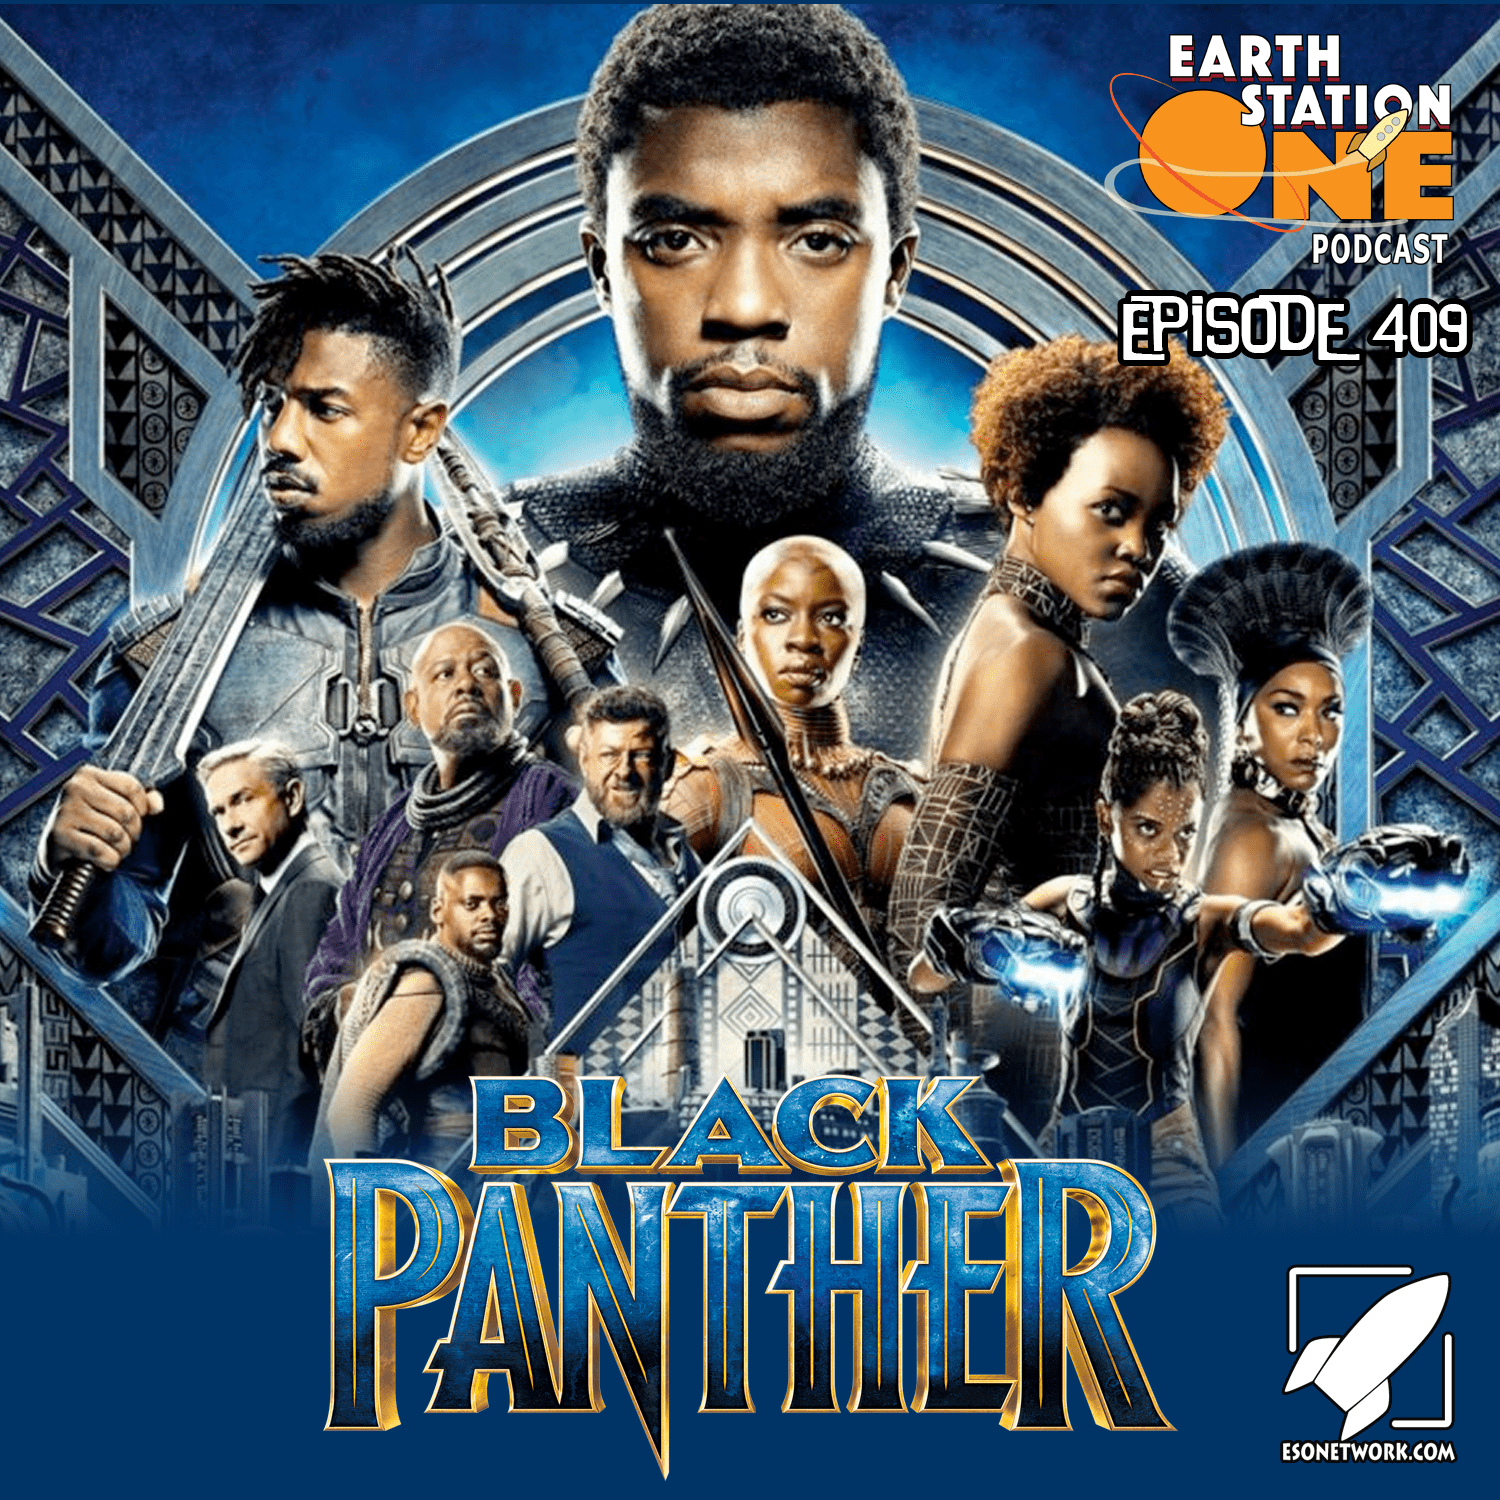 Earth Station One Podcast Ep 409 - Black Panther Movie Reivew